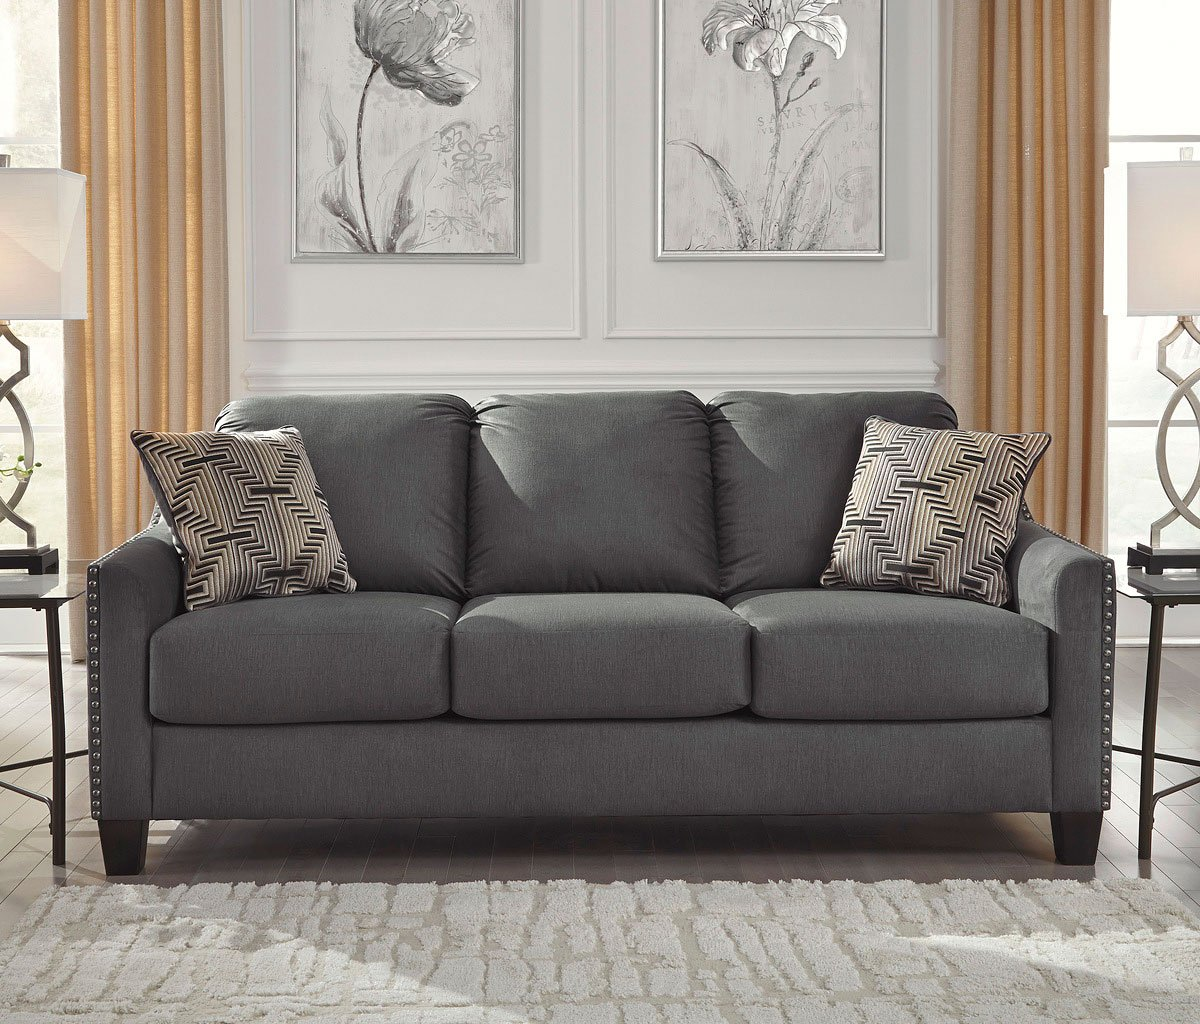 Exceptionnel Torcello Graphite Sofa